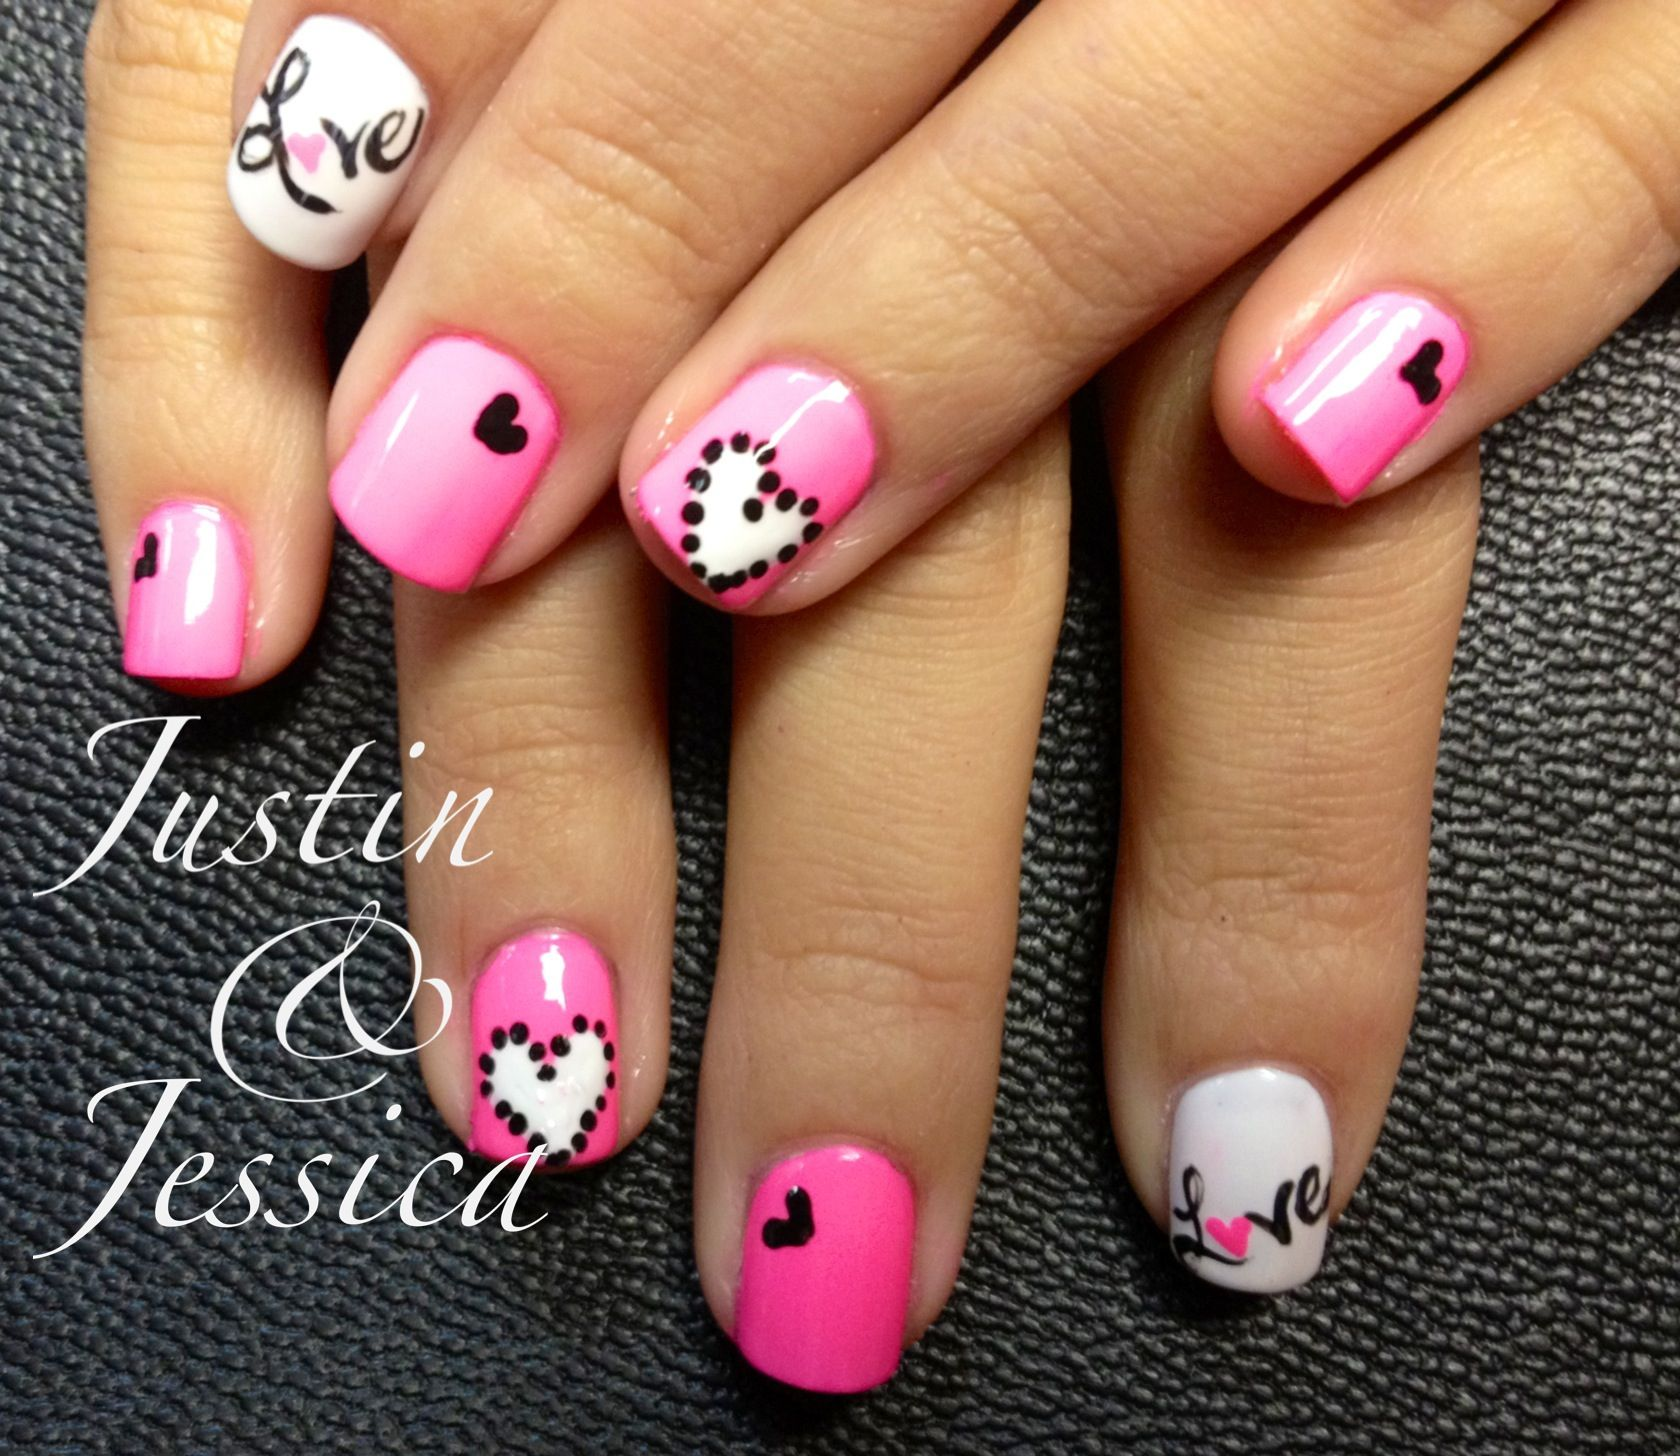 Valentine Nail Art Heart Love All That Gooshy Stuff Nails By Jeannie Jackson The Nail Station Gle Valentine Nail Art Valentines Nails Shellac Nail Art